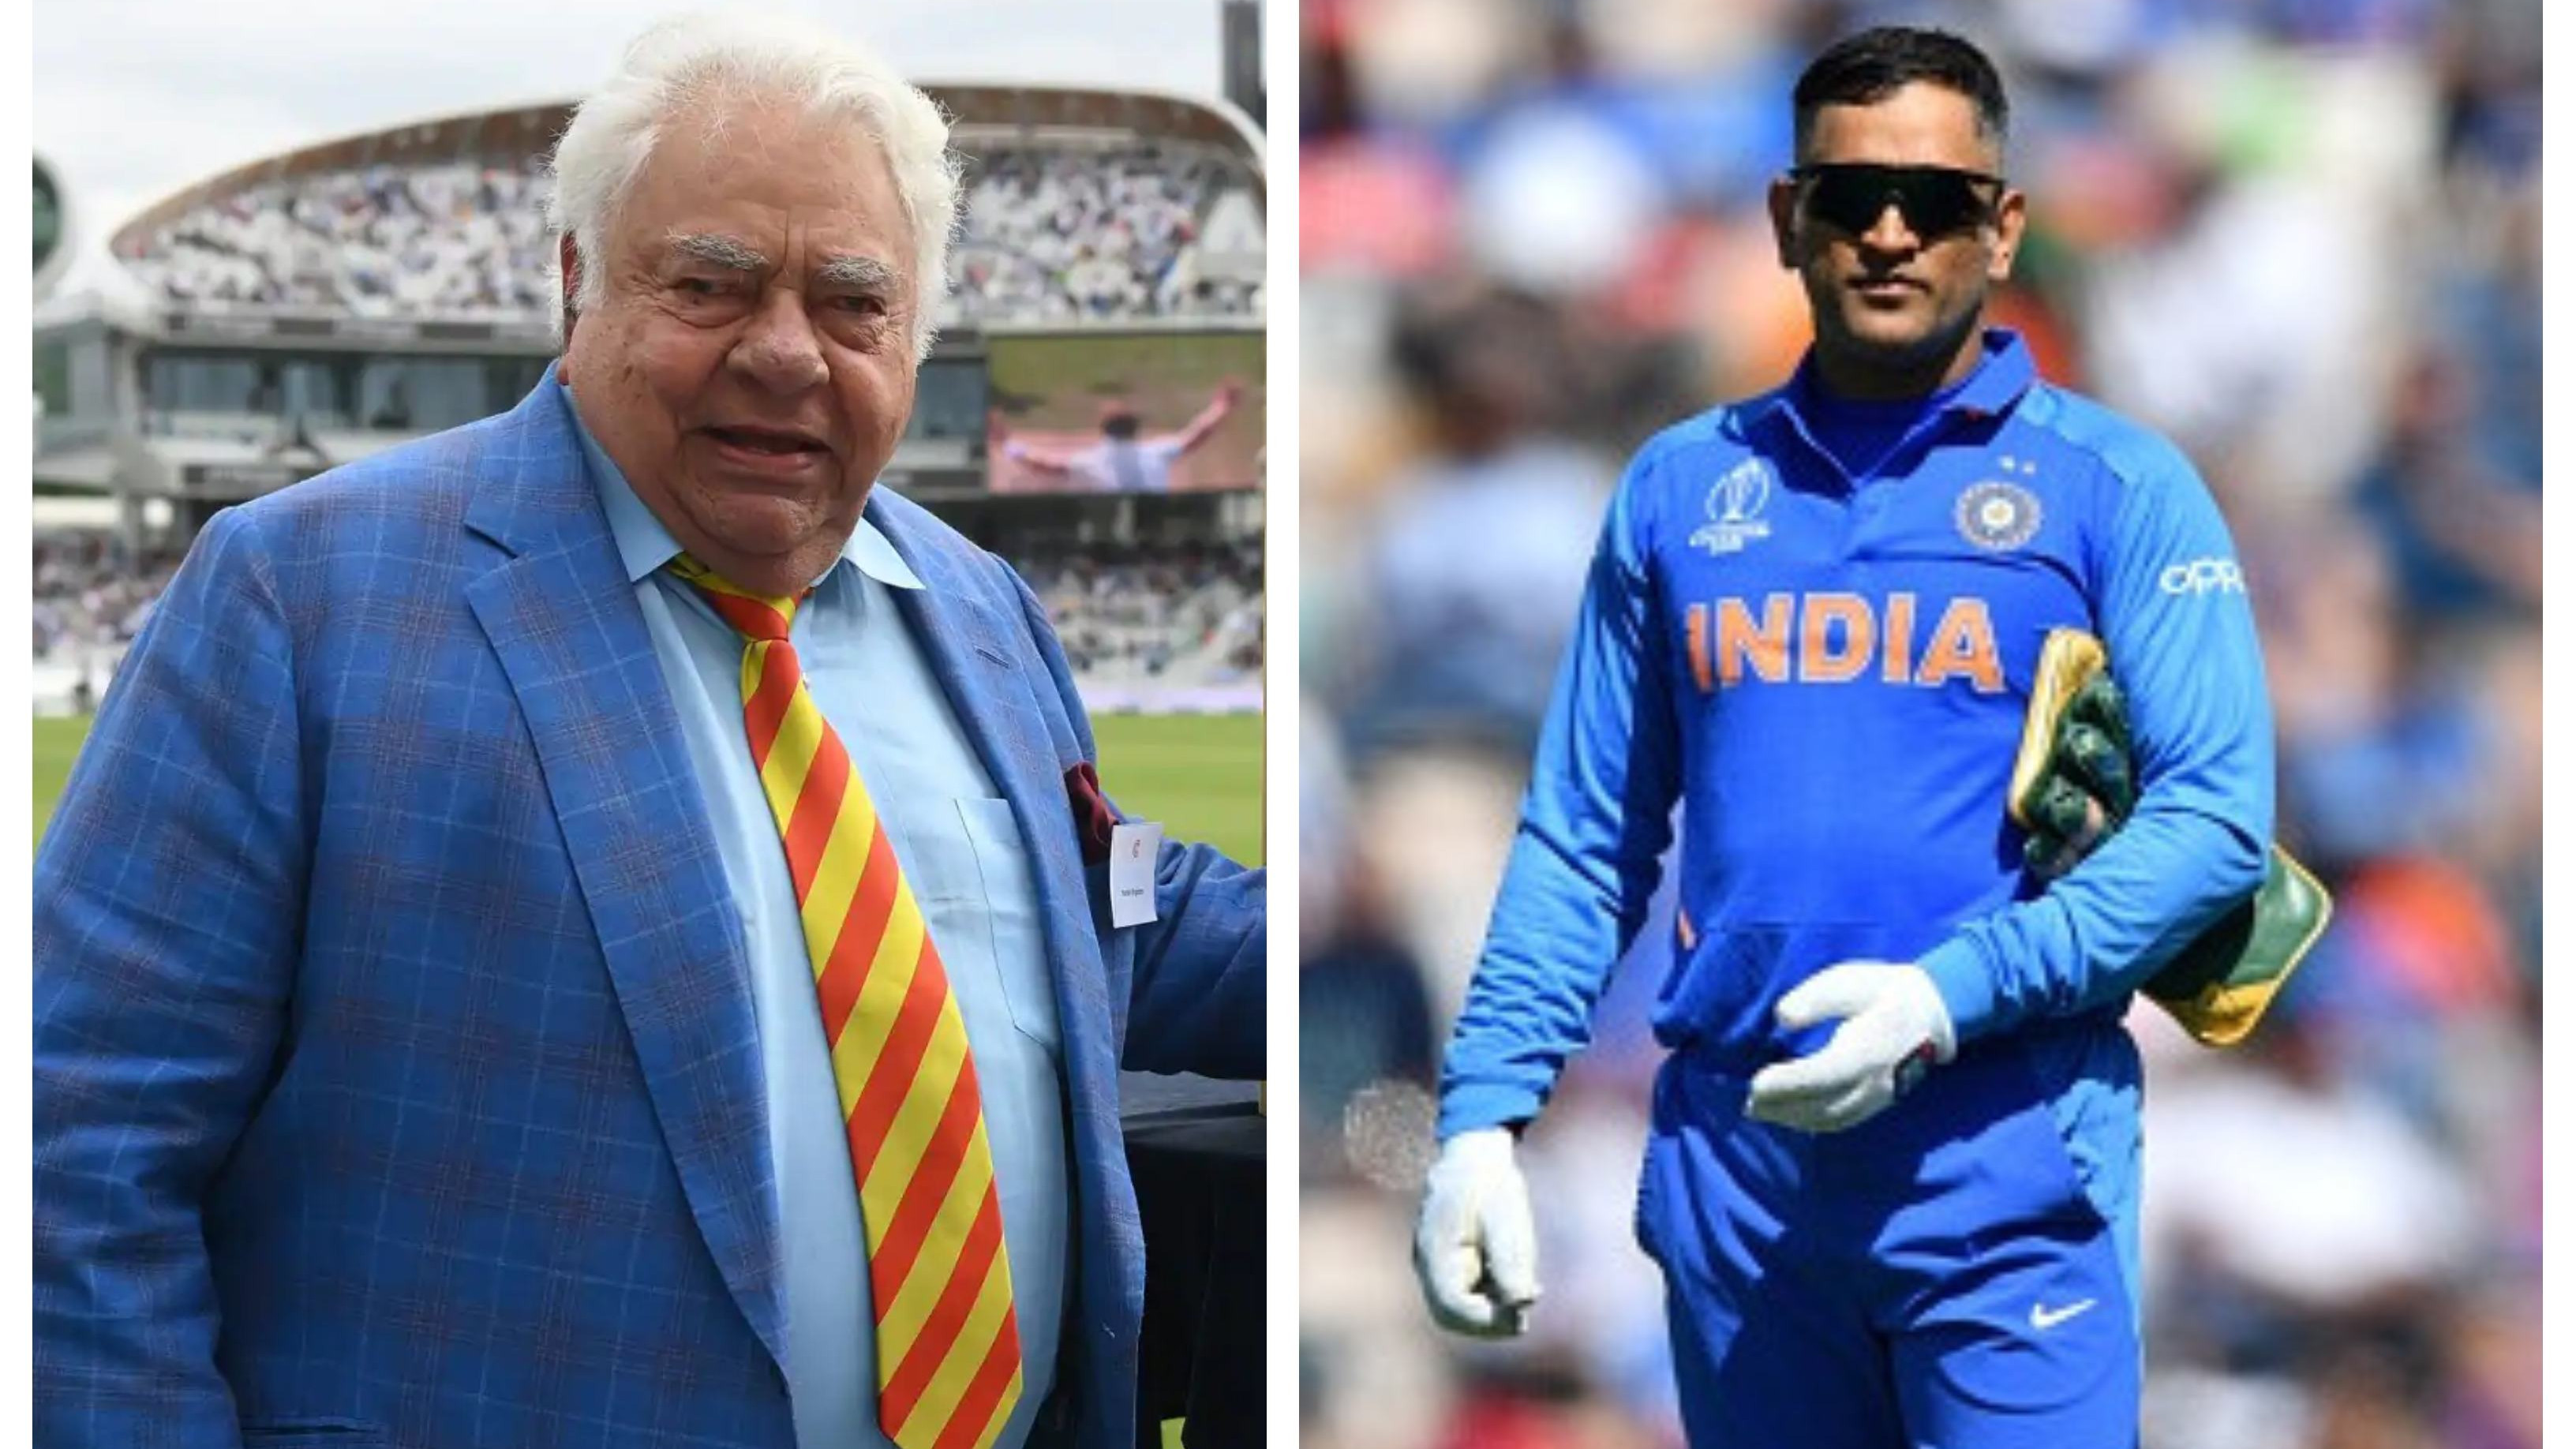 T20 World Cup 2021: Farokh Engineer delighted by BCCI's decision to appoint MS Dhoni as Team India mentor